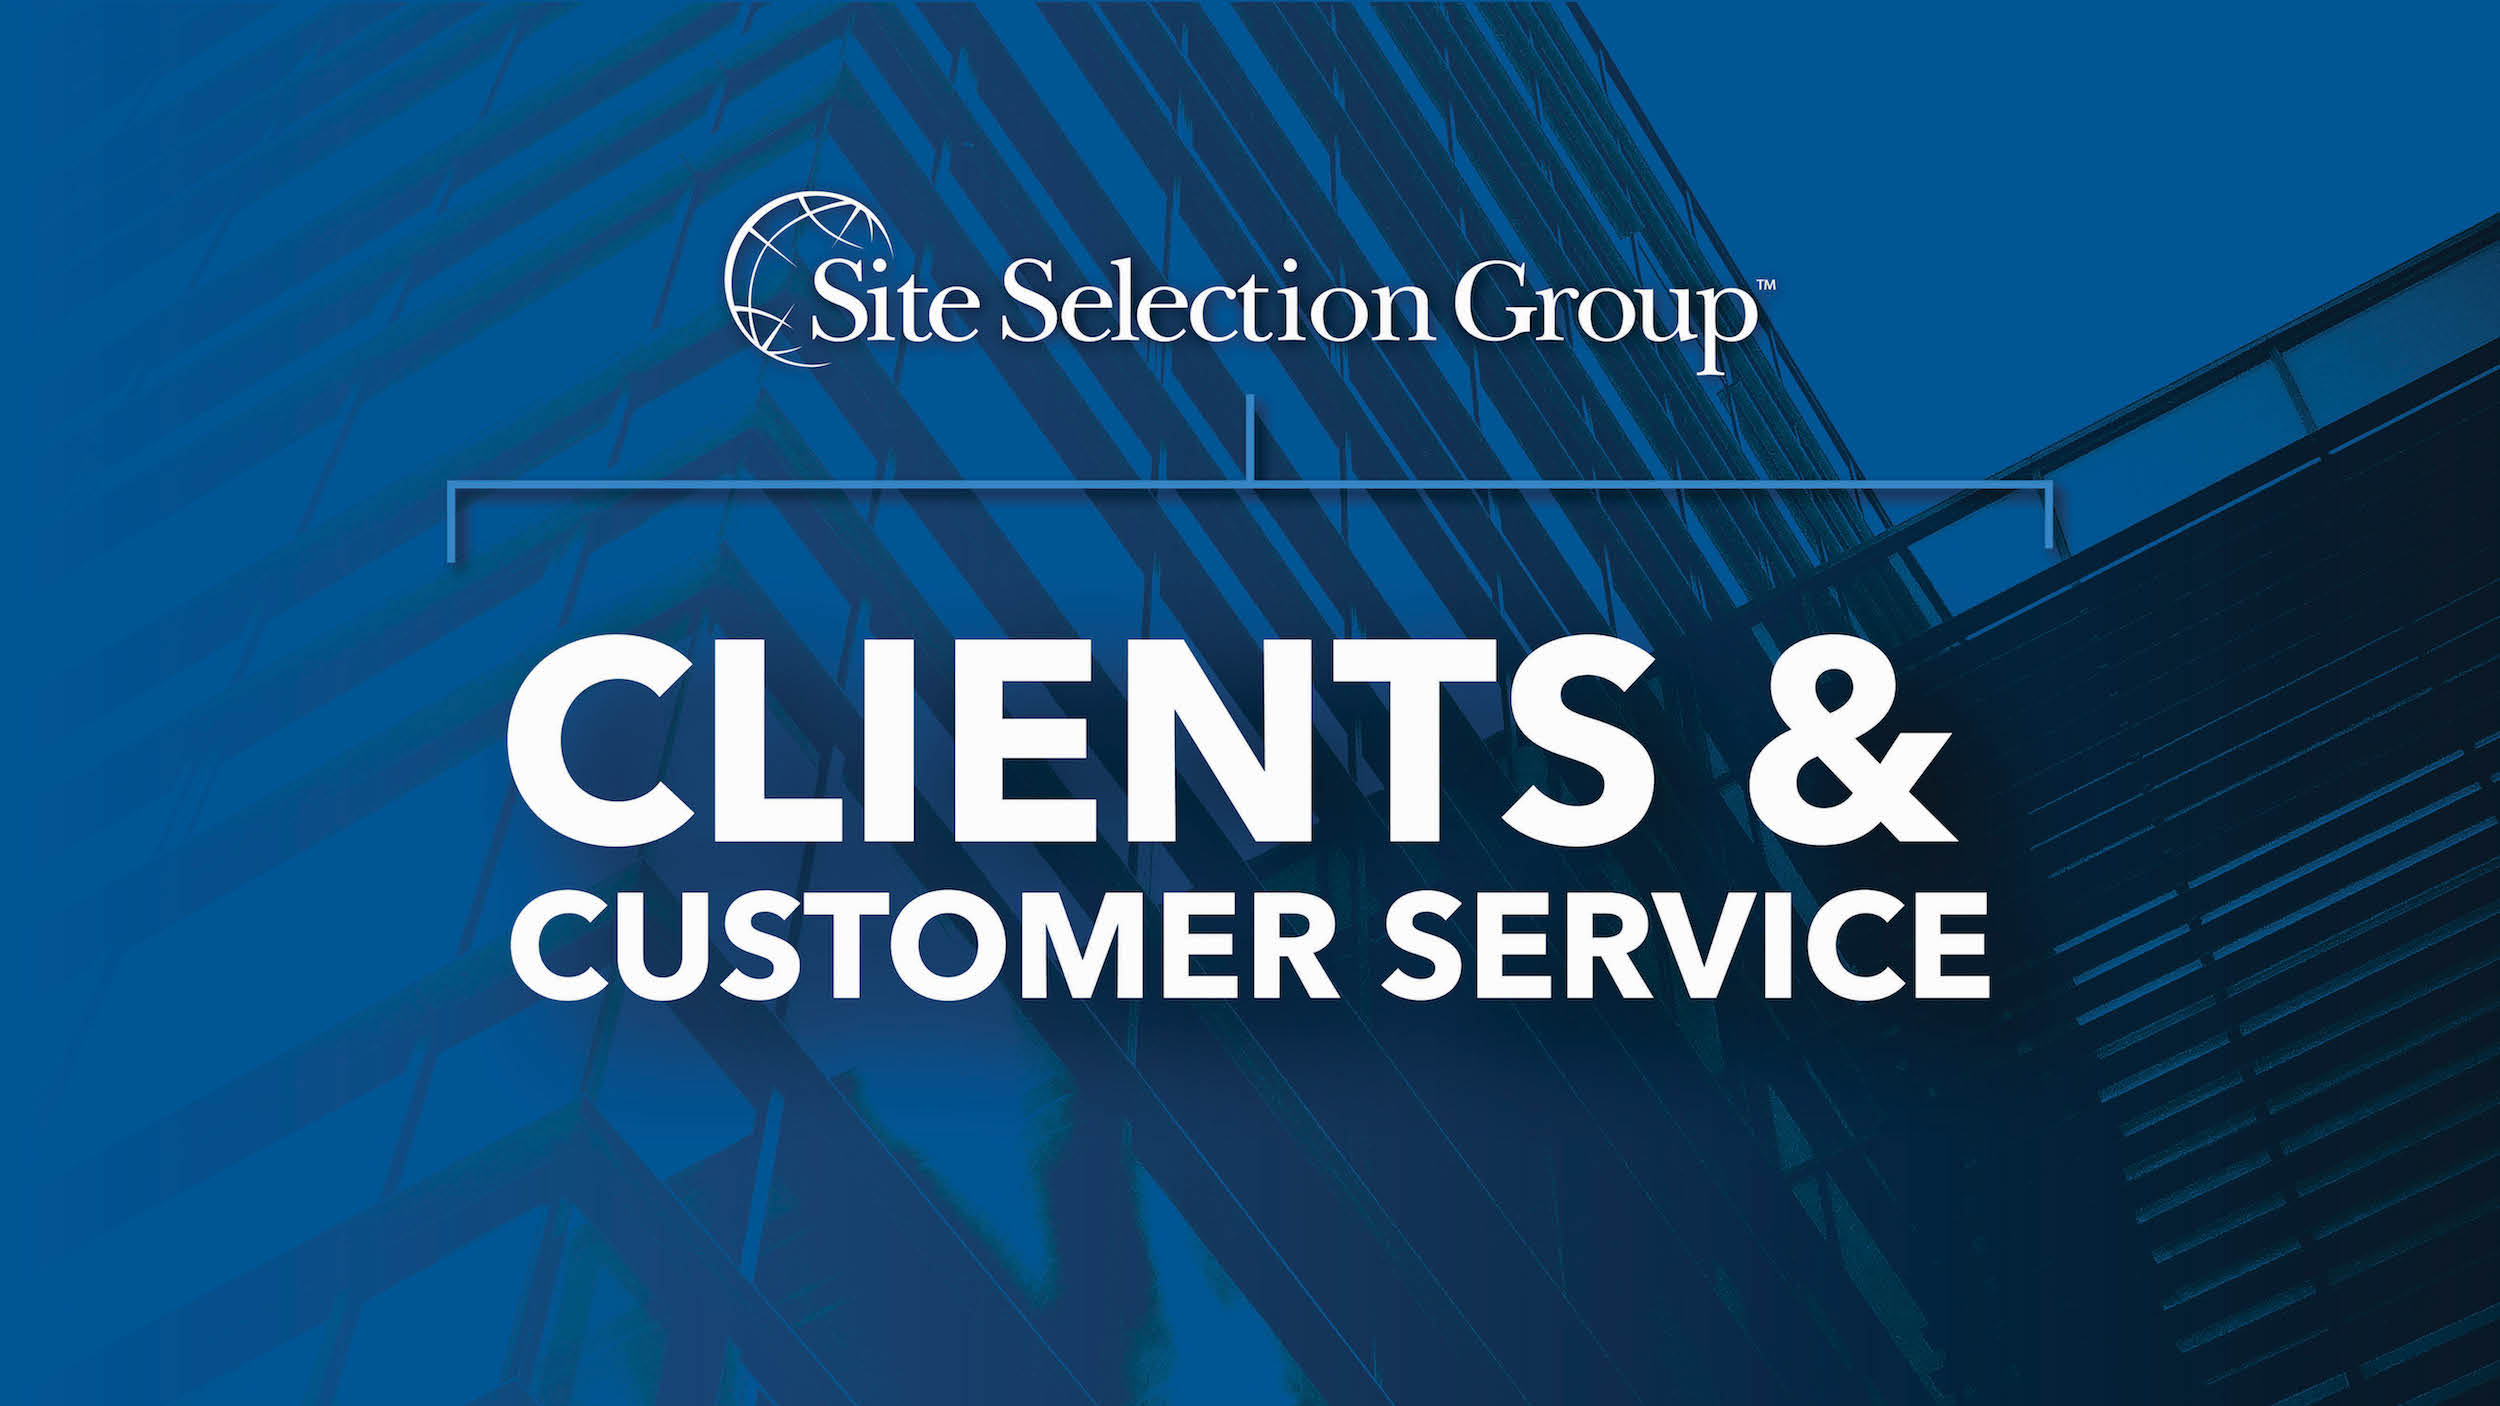 Our Clients & Customer Sevice